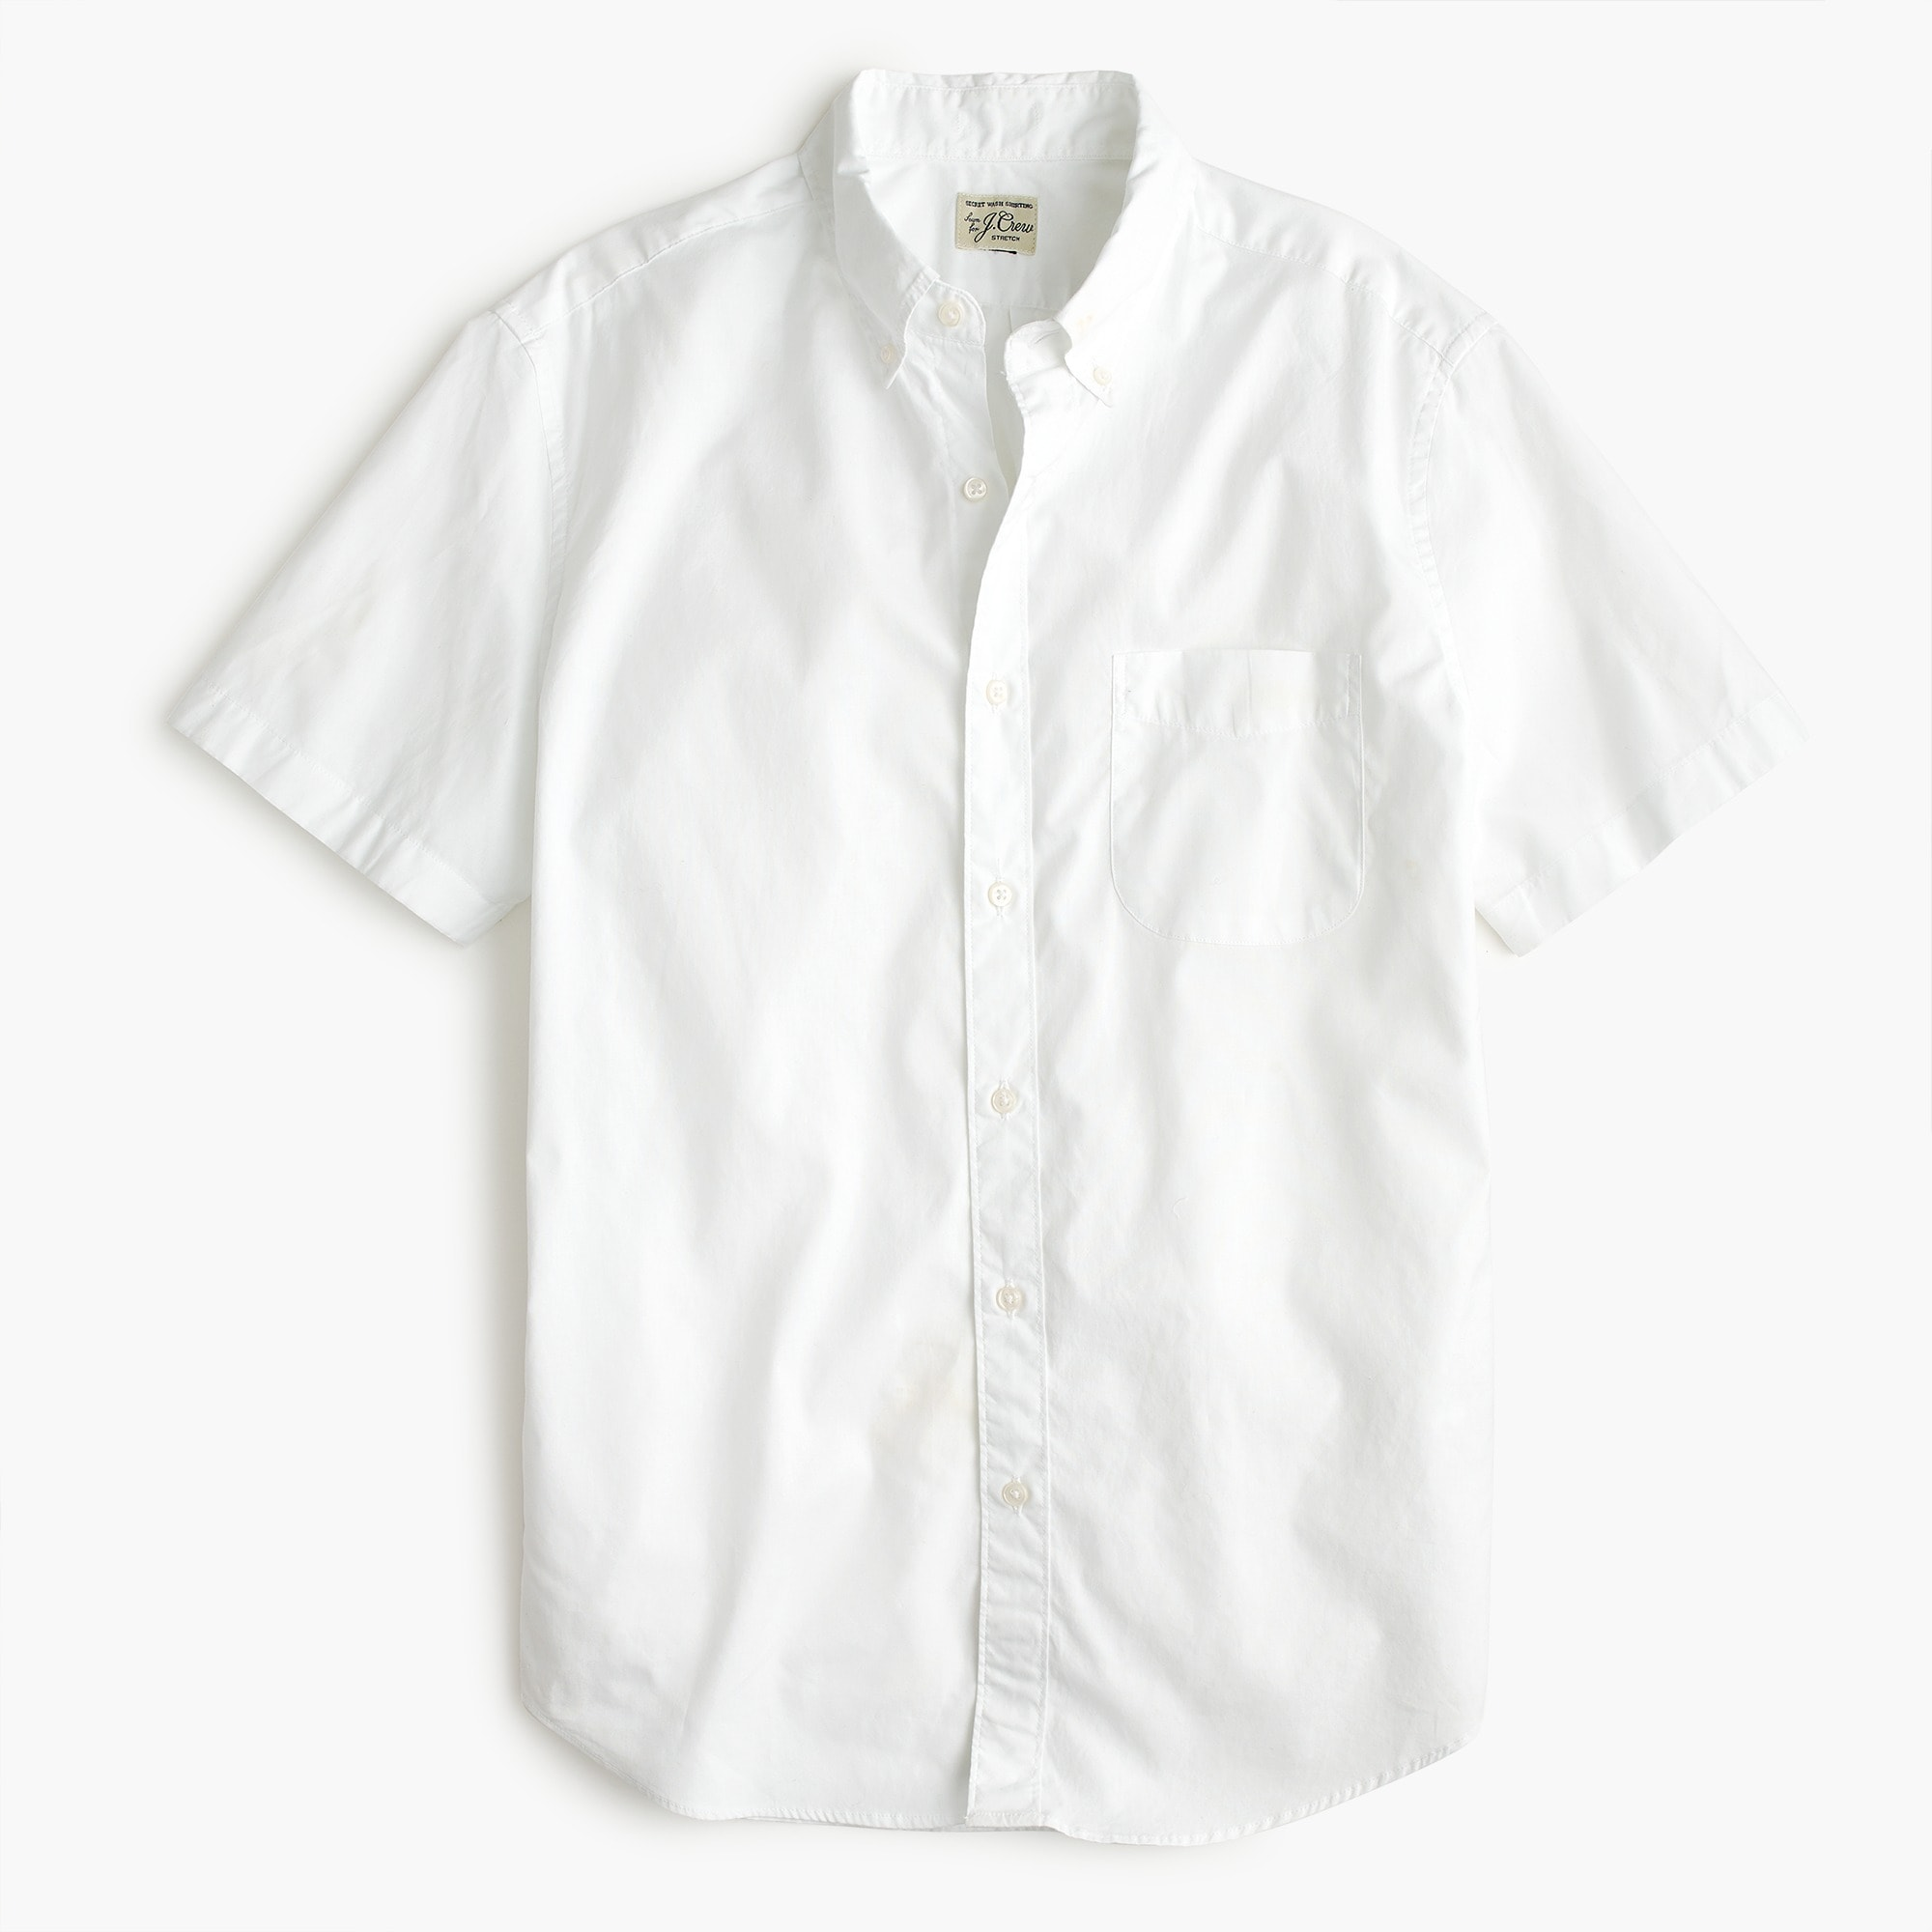 mens Short-sleeve shirt in stretch white poplin